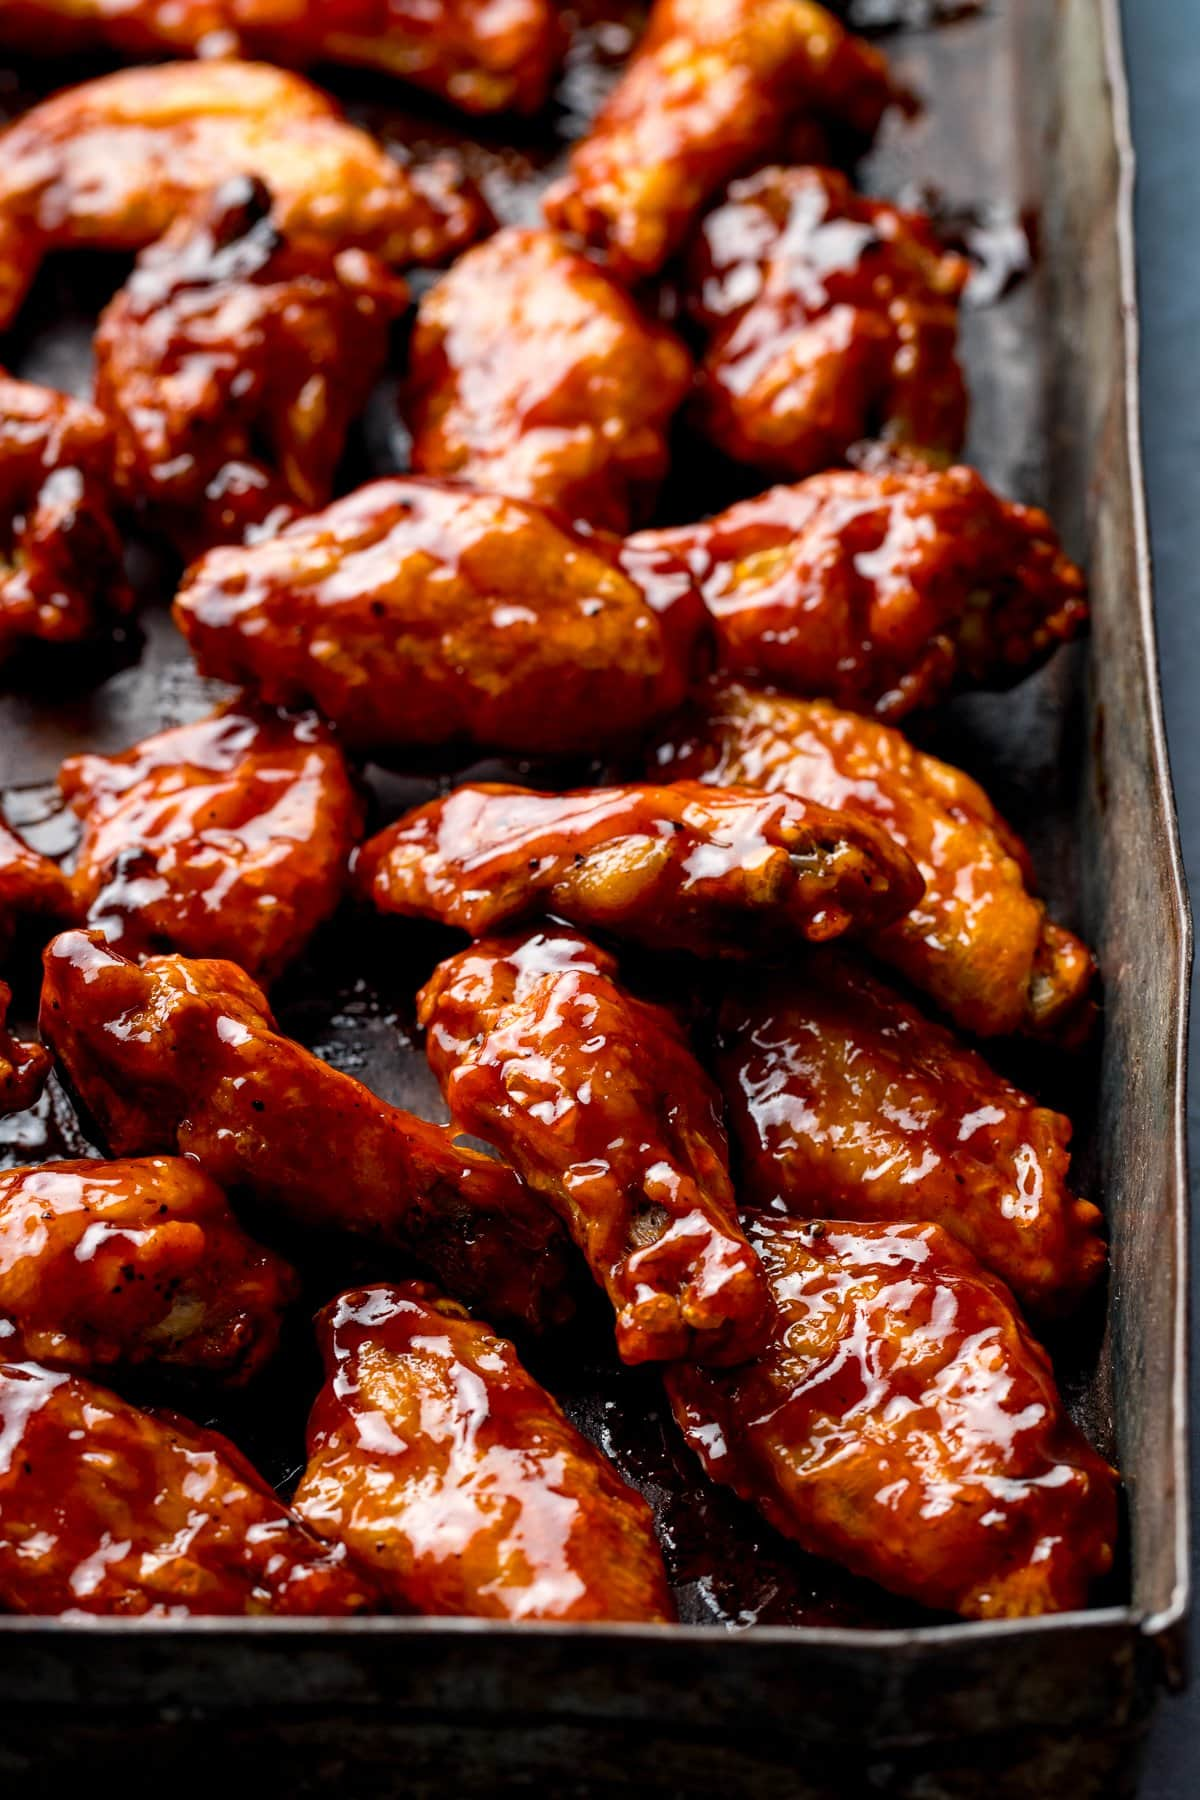 BBQ chicken wings on a baking tray